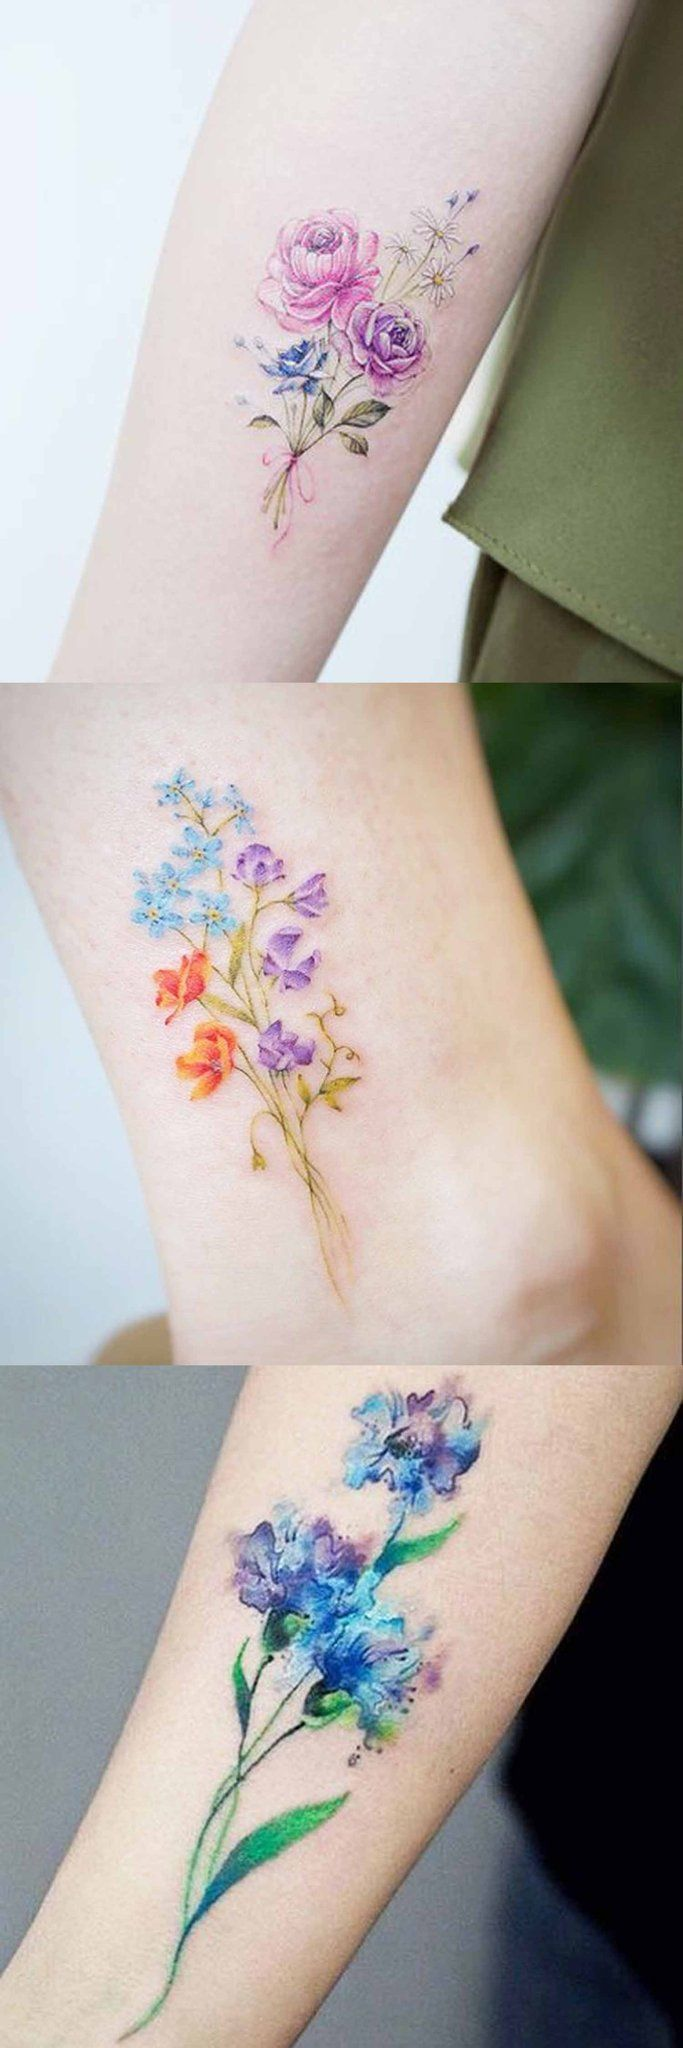 Tattoo Arm Frauen – Small Tiny Floral Flower Tattoo Ideas at MyBodiArt.com – Arm Leg Ankle… #womentattooarm #armtattoos